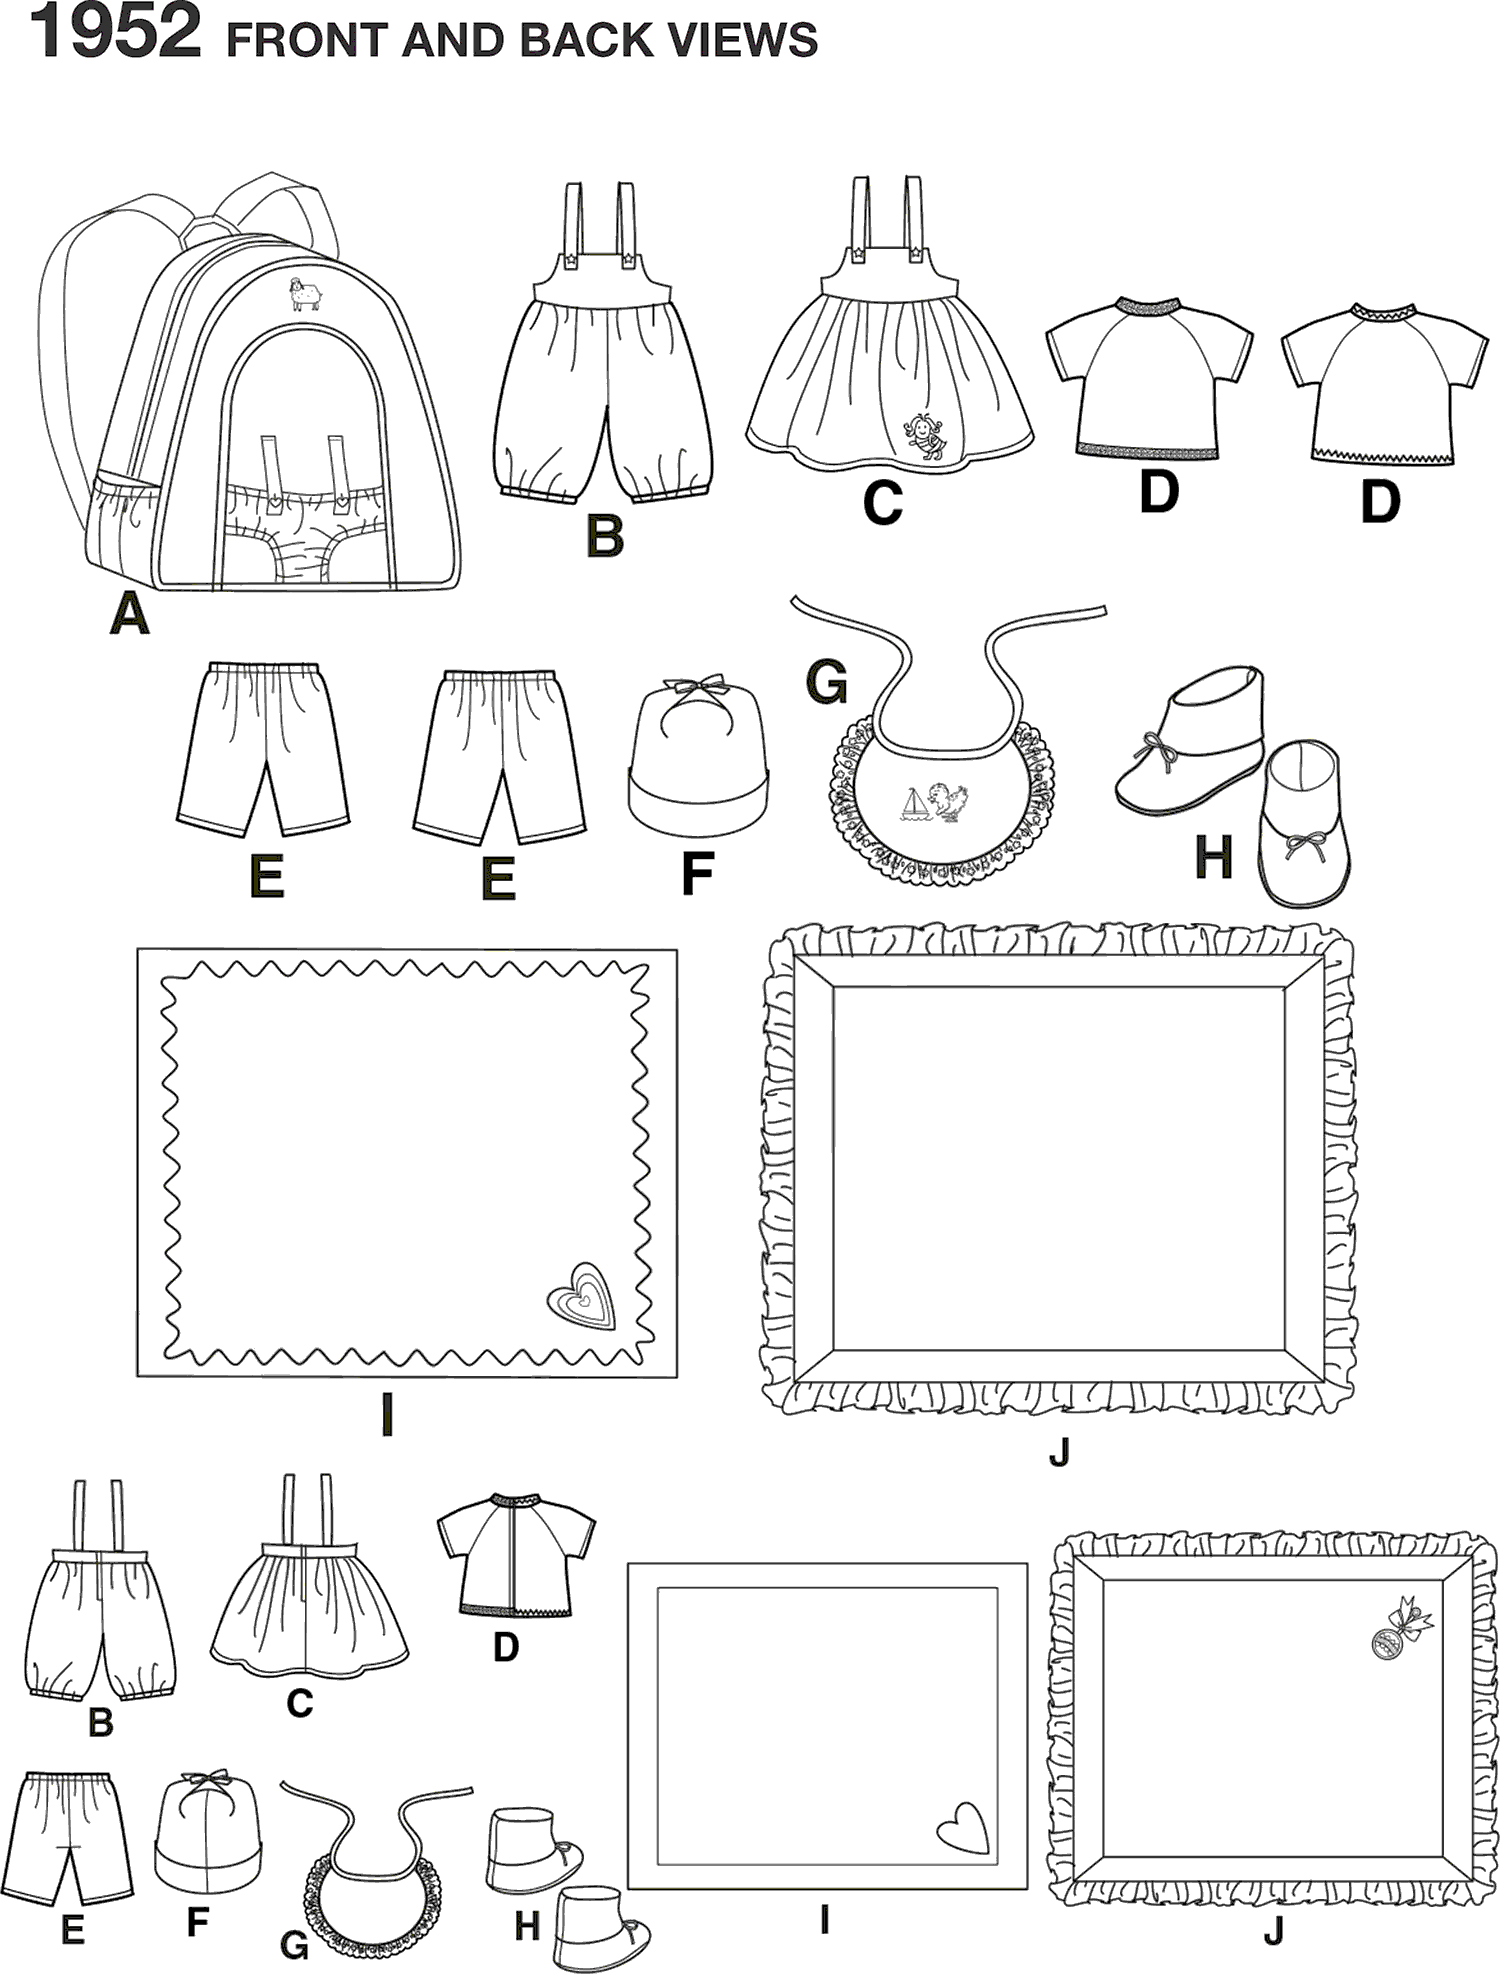 Simplicity Pattern 1952 Doll Clothes and Accessories Line Art From Patternsandplains.com